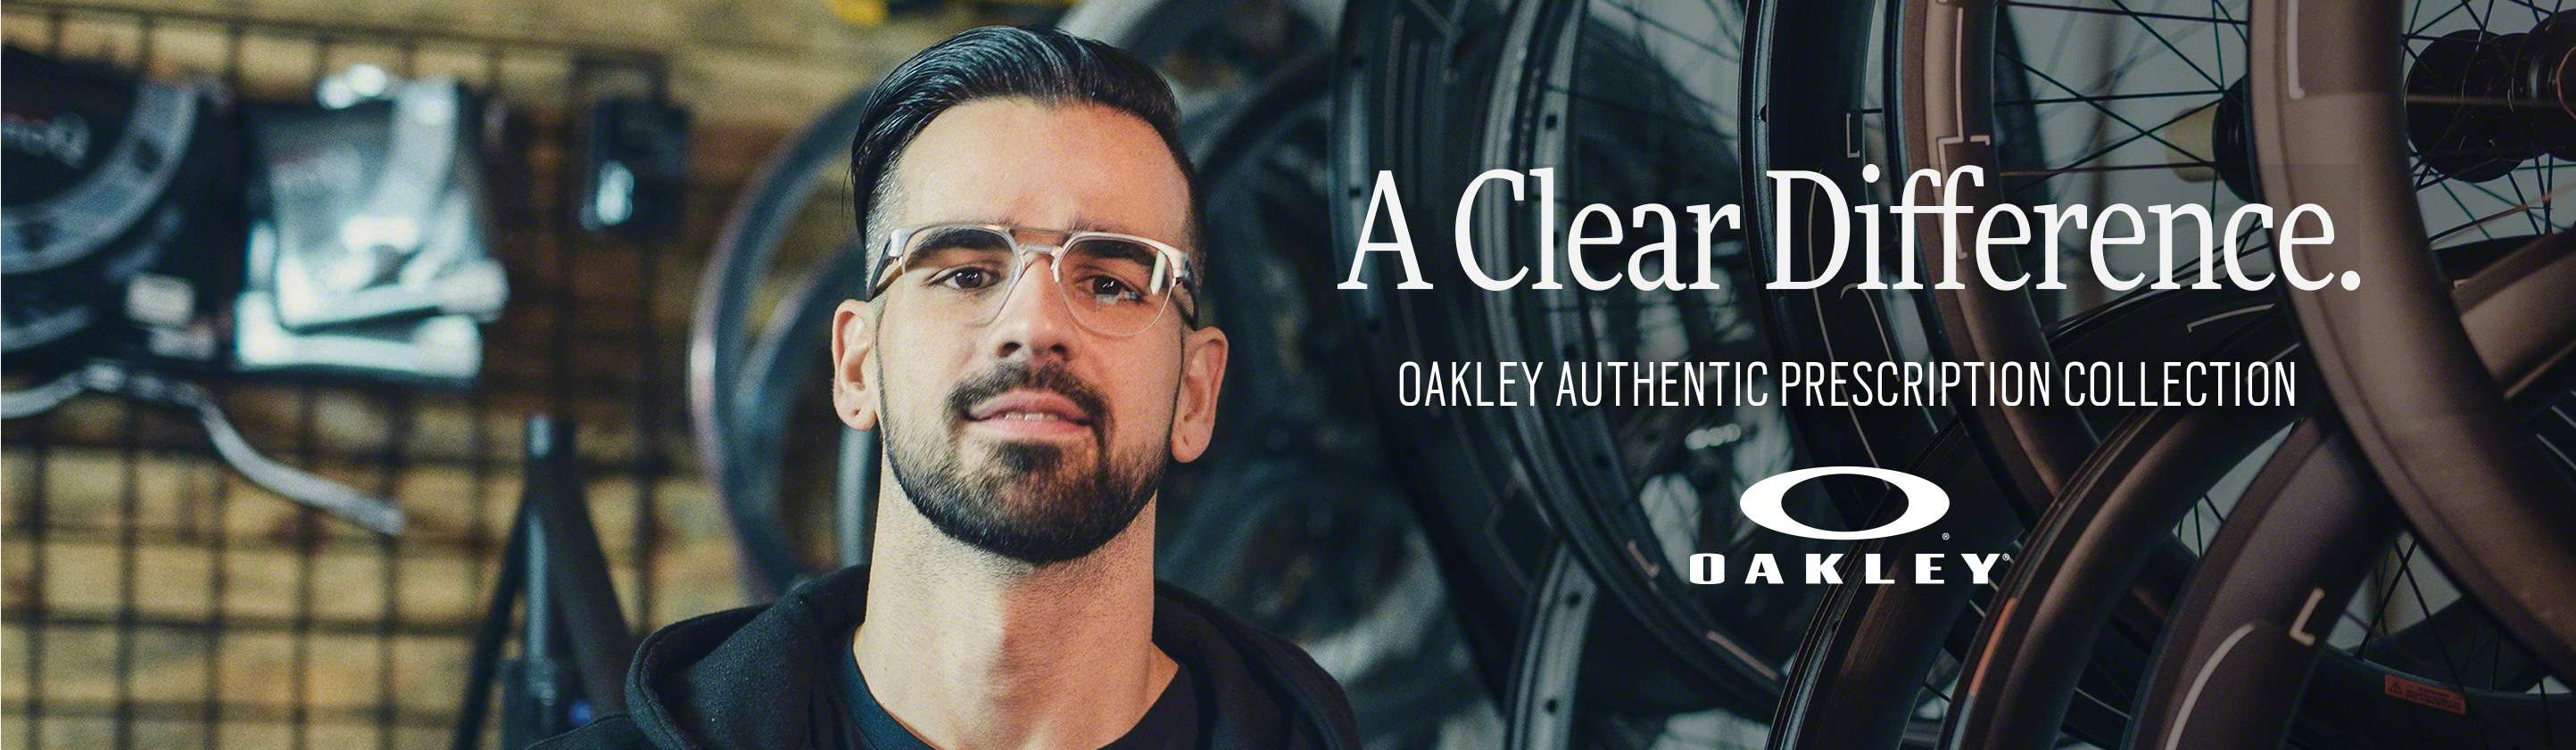 A Clear Difference. Oakley authentic prescription collection.